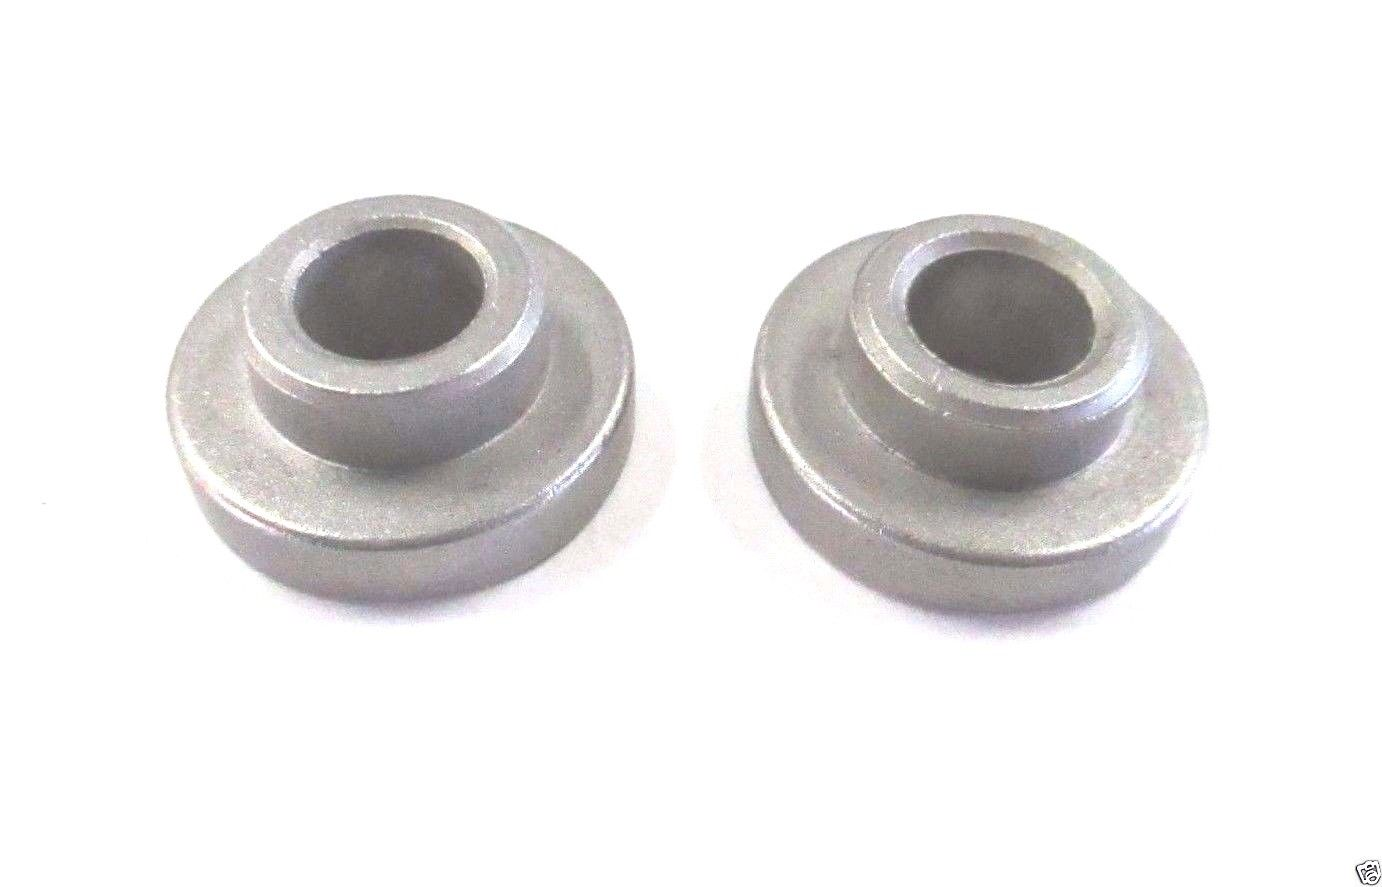 2 Pack Genuine MTD 738-0372B Shoulder Spacer Fits Craftsman Troy-Bilt Yard-Man